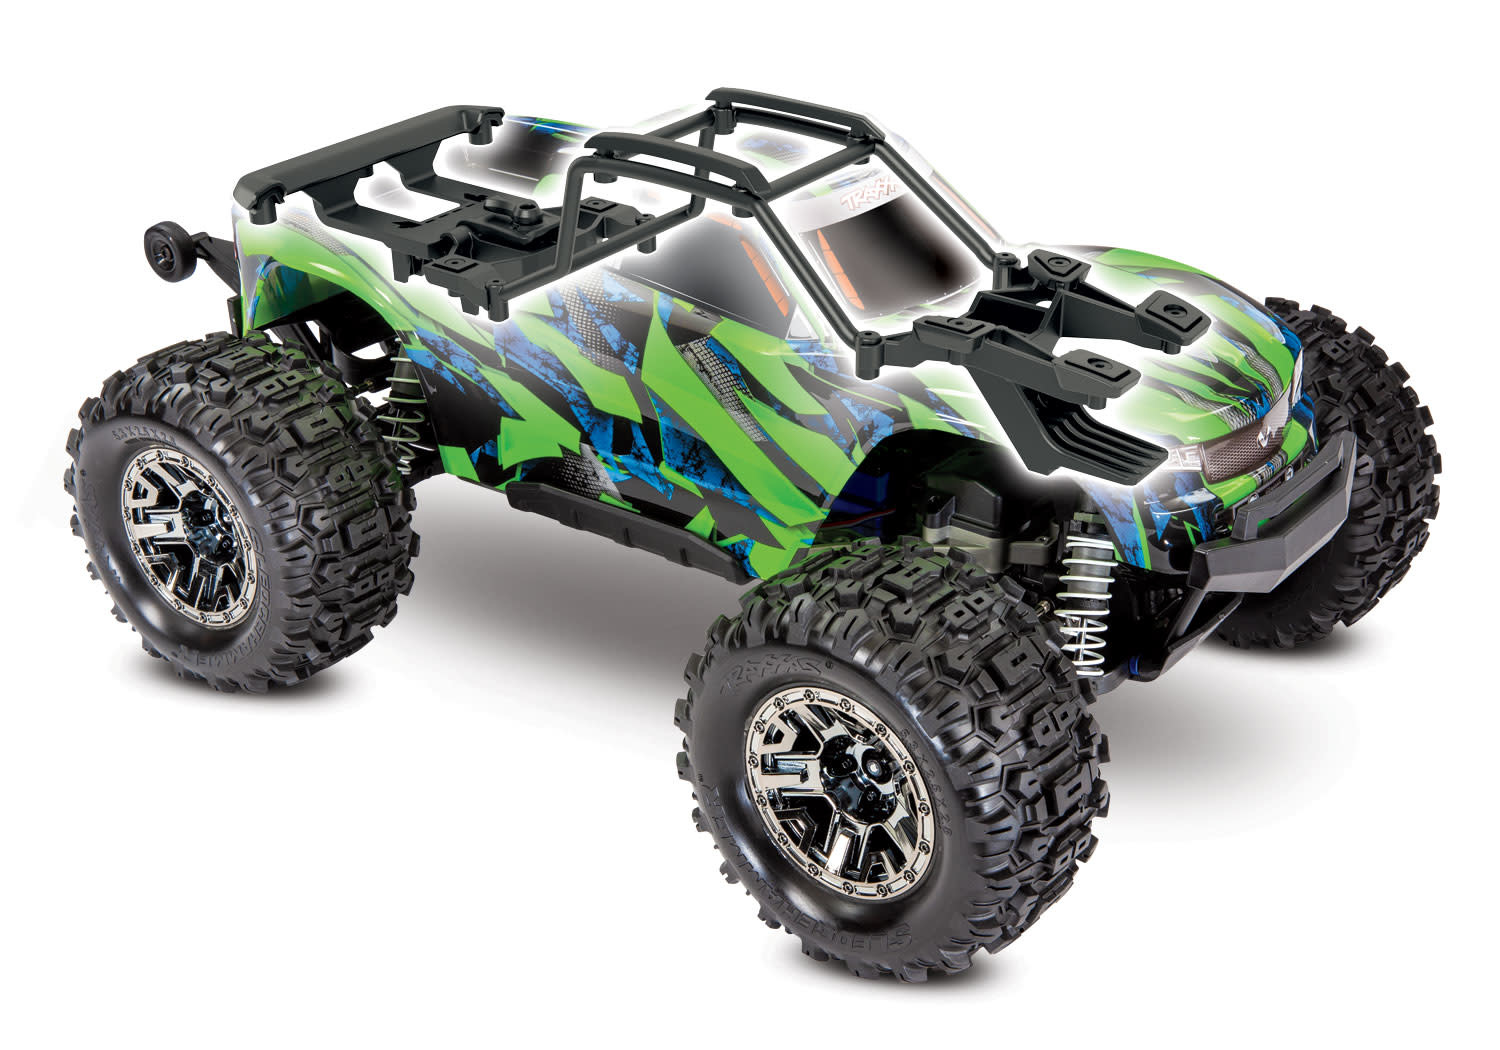 Traxxas Hoss 1/10 Scale 4WD Brushless Electric Monster Truck, VXL-3S, TQi - Green TRX90076-4G-11